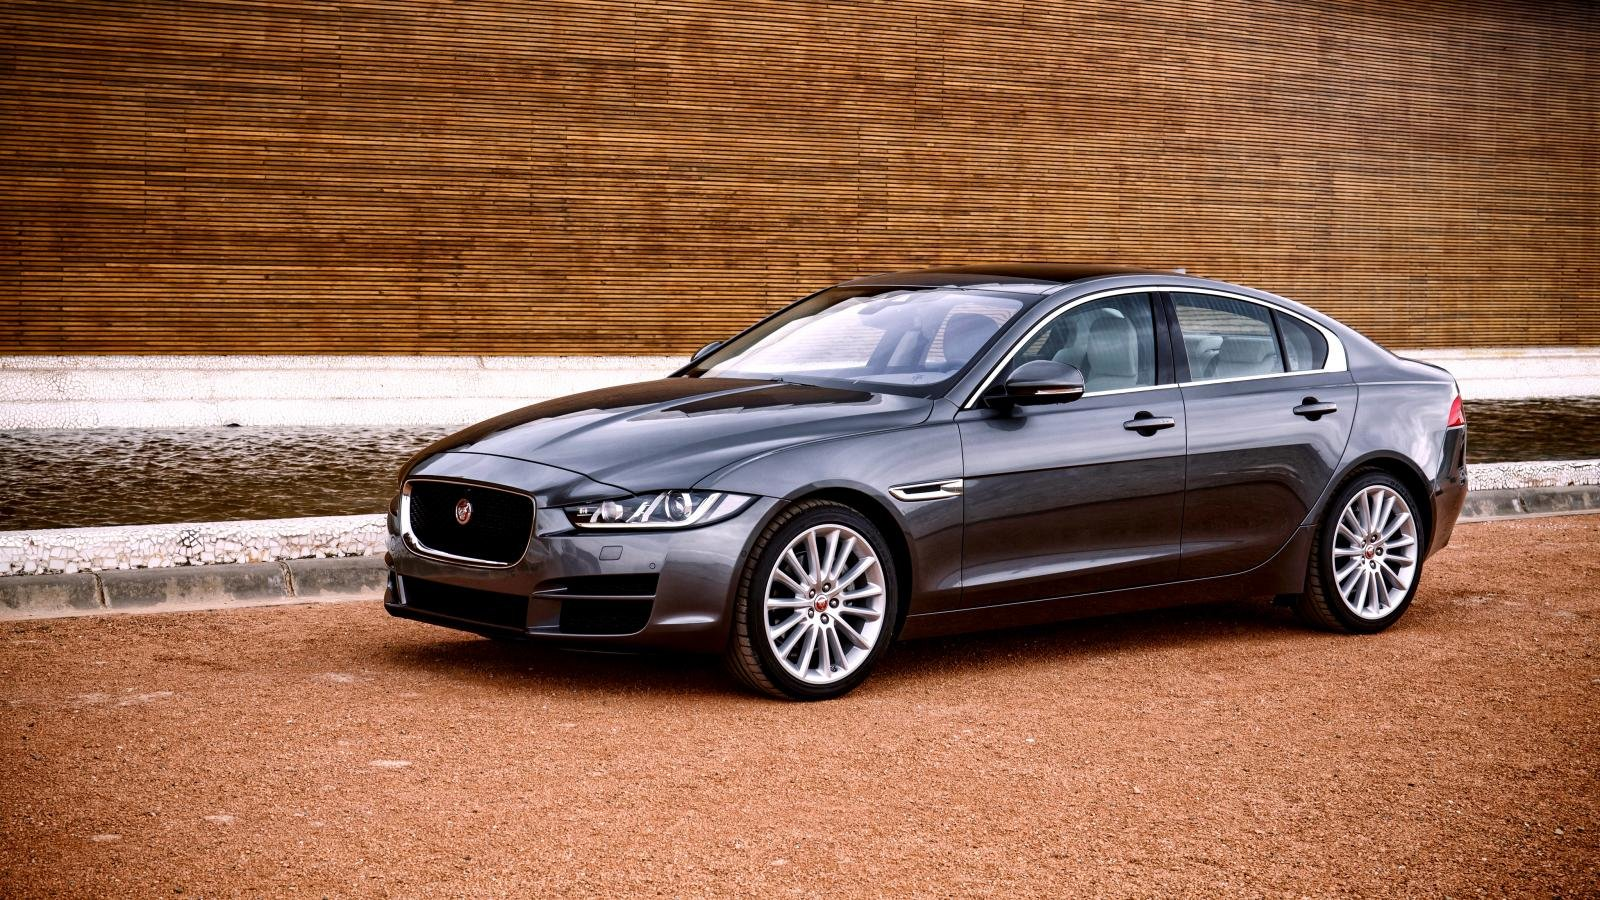 Awesome Jaguar XE free background ID:260217 for hd 1600x900 PC